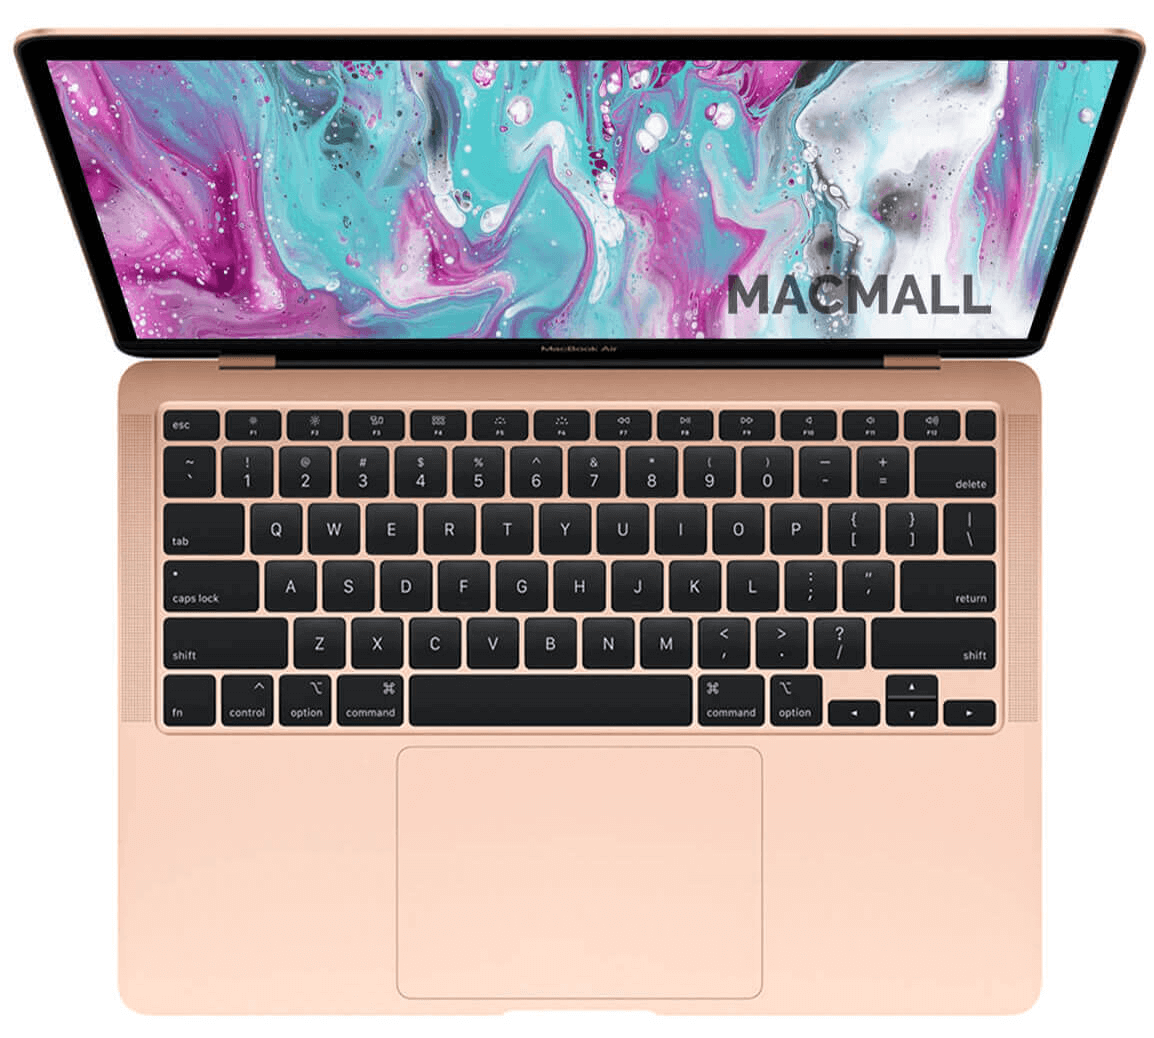 MacBook Air M1 2020 MGNE3 13-inch Gold 8GB / 512GB / GPU 8-core